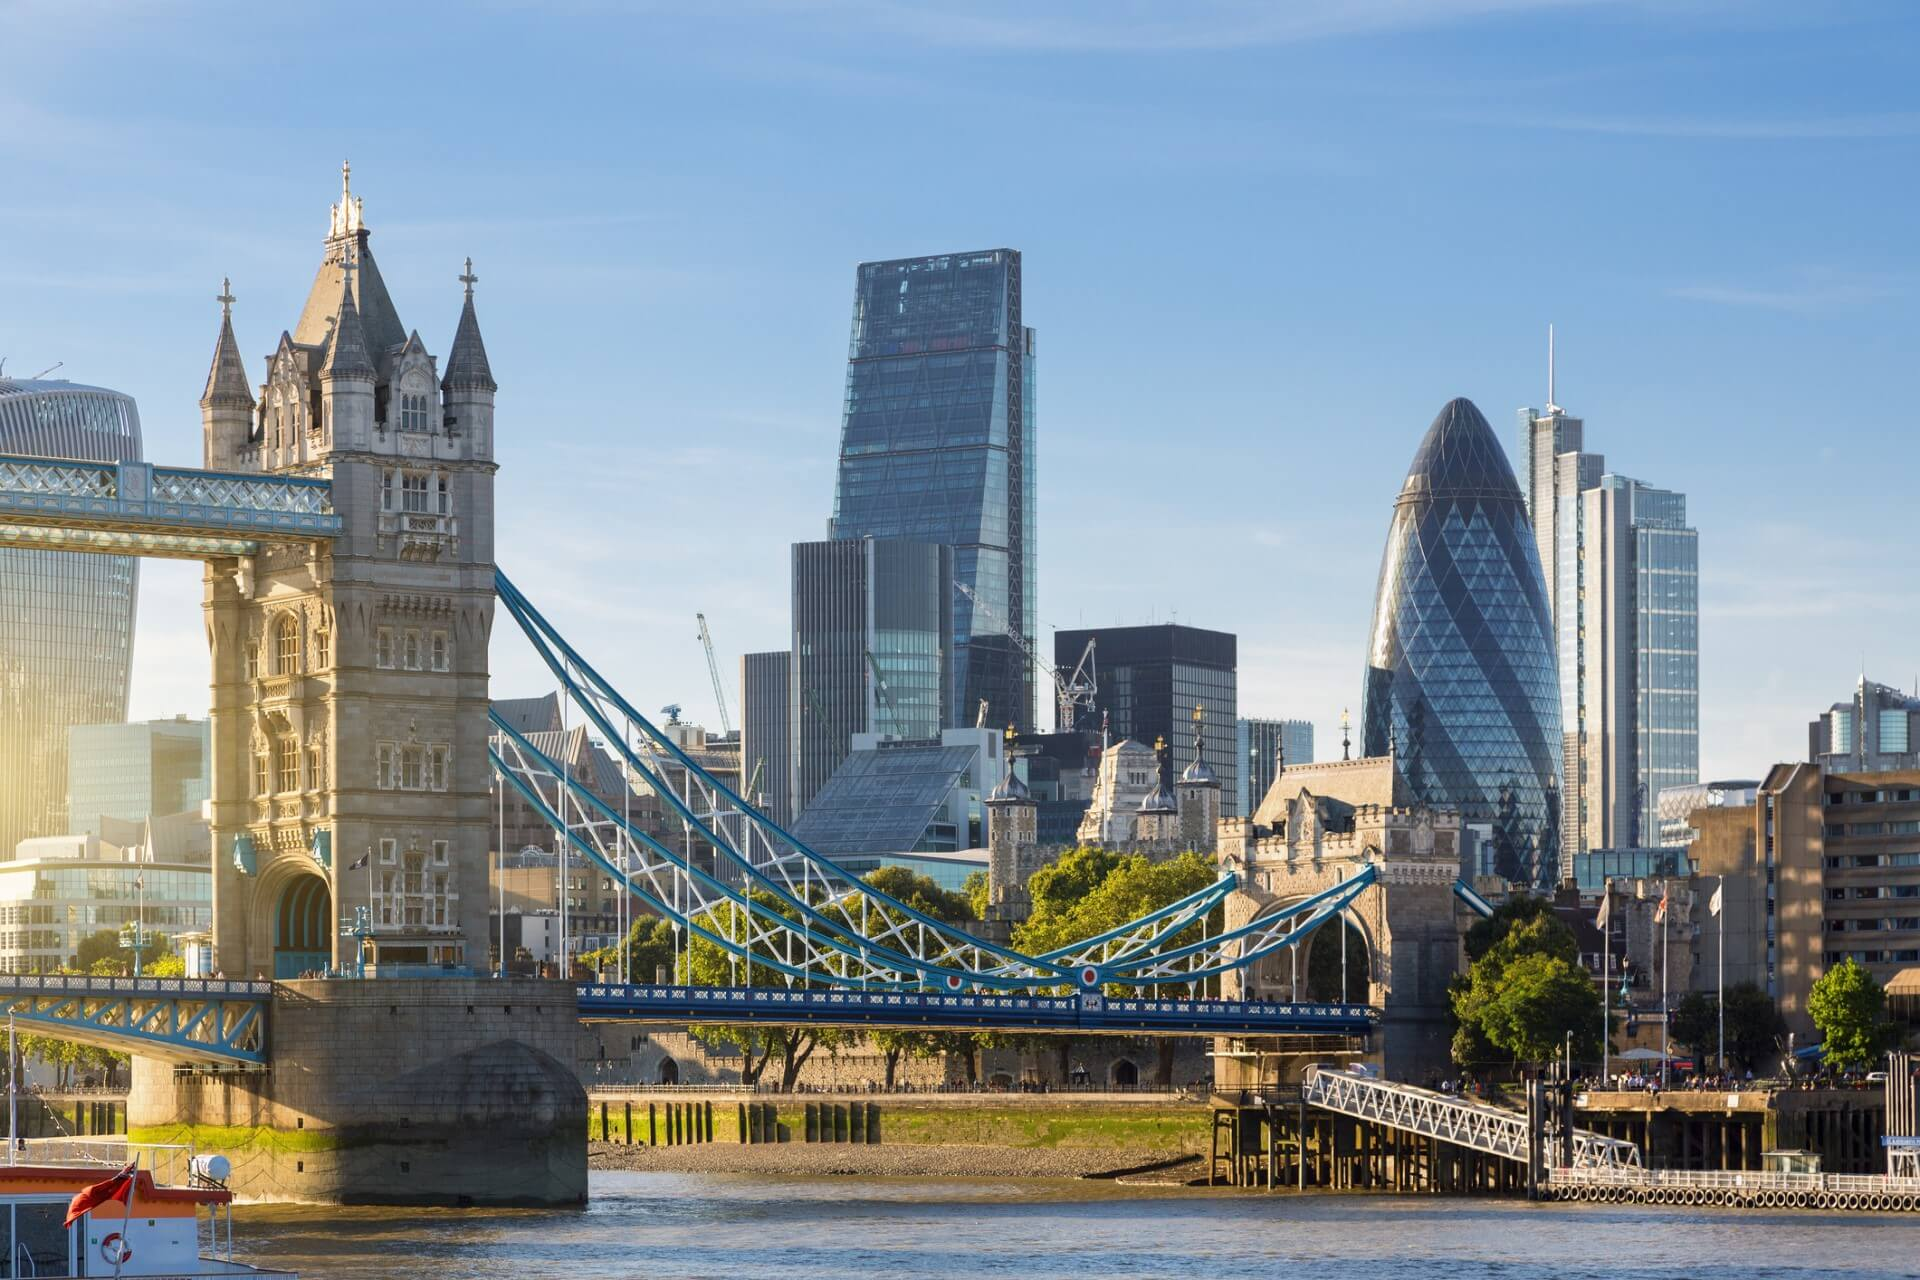 A picture of the London bridge.